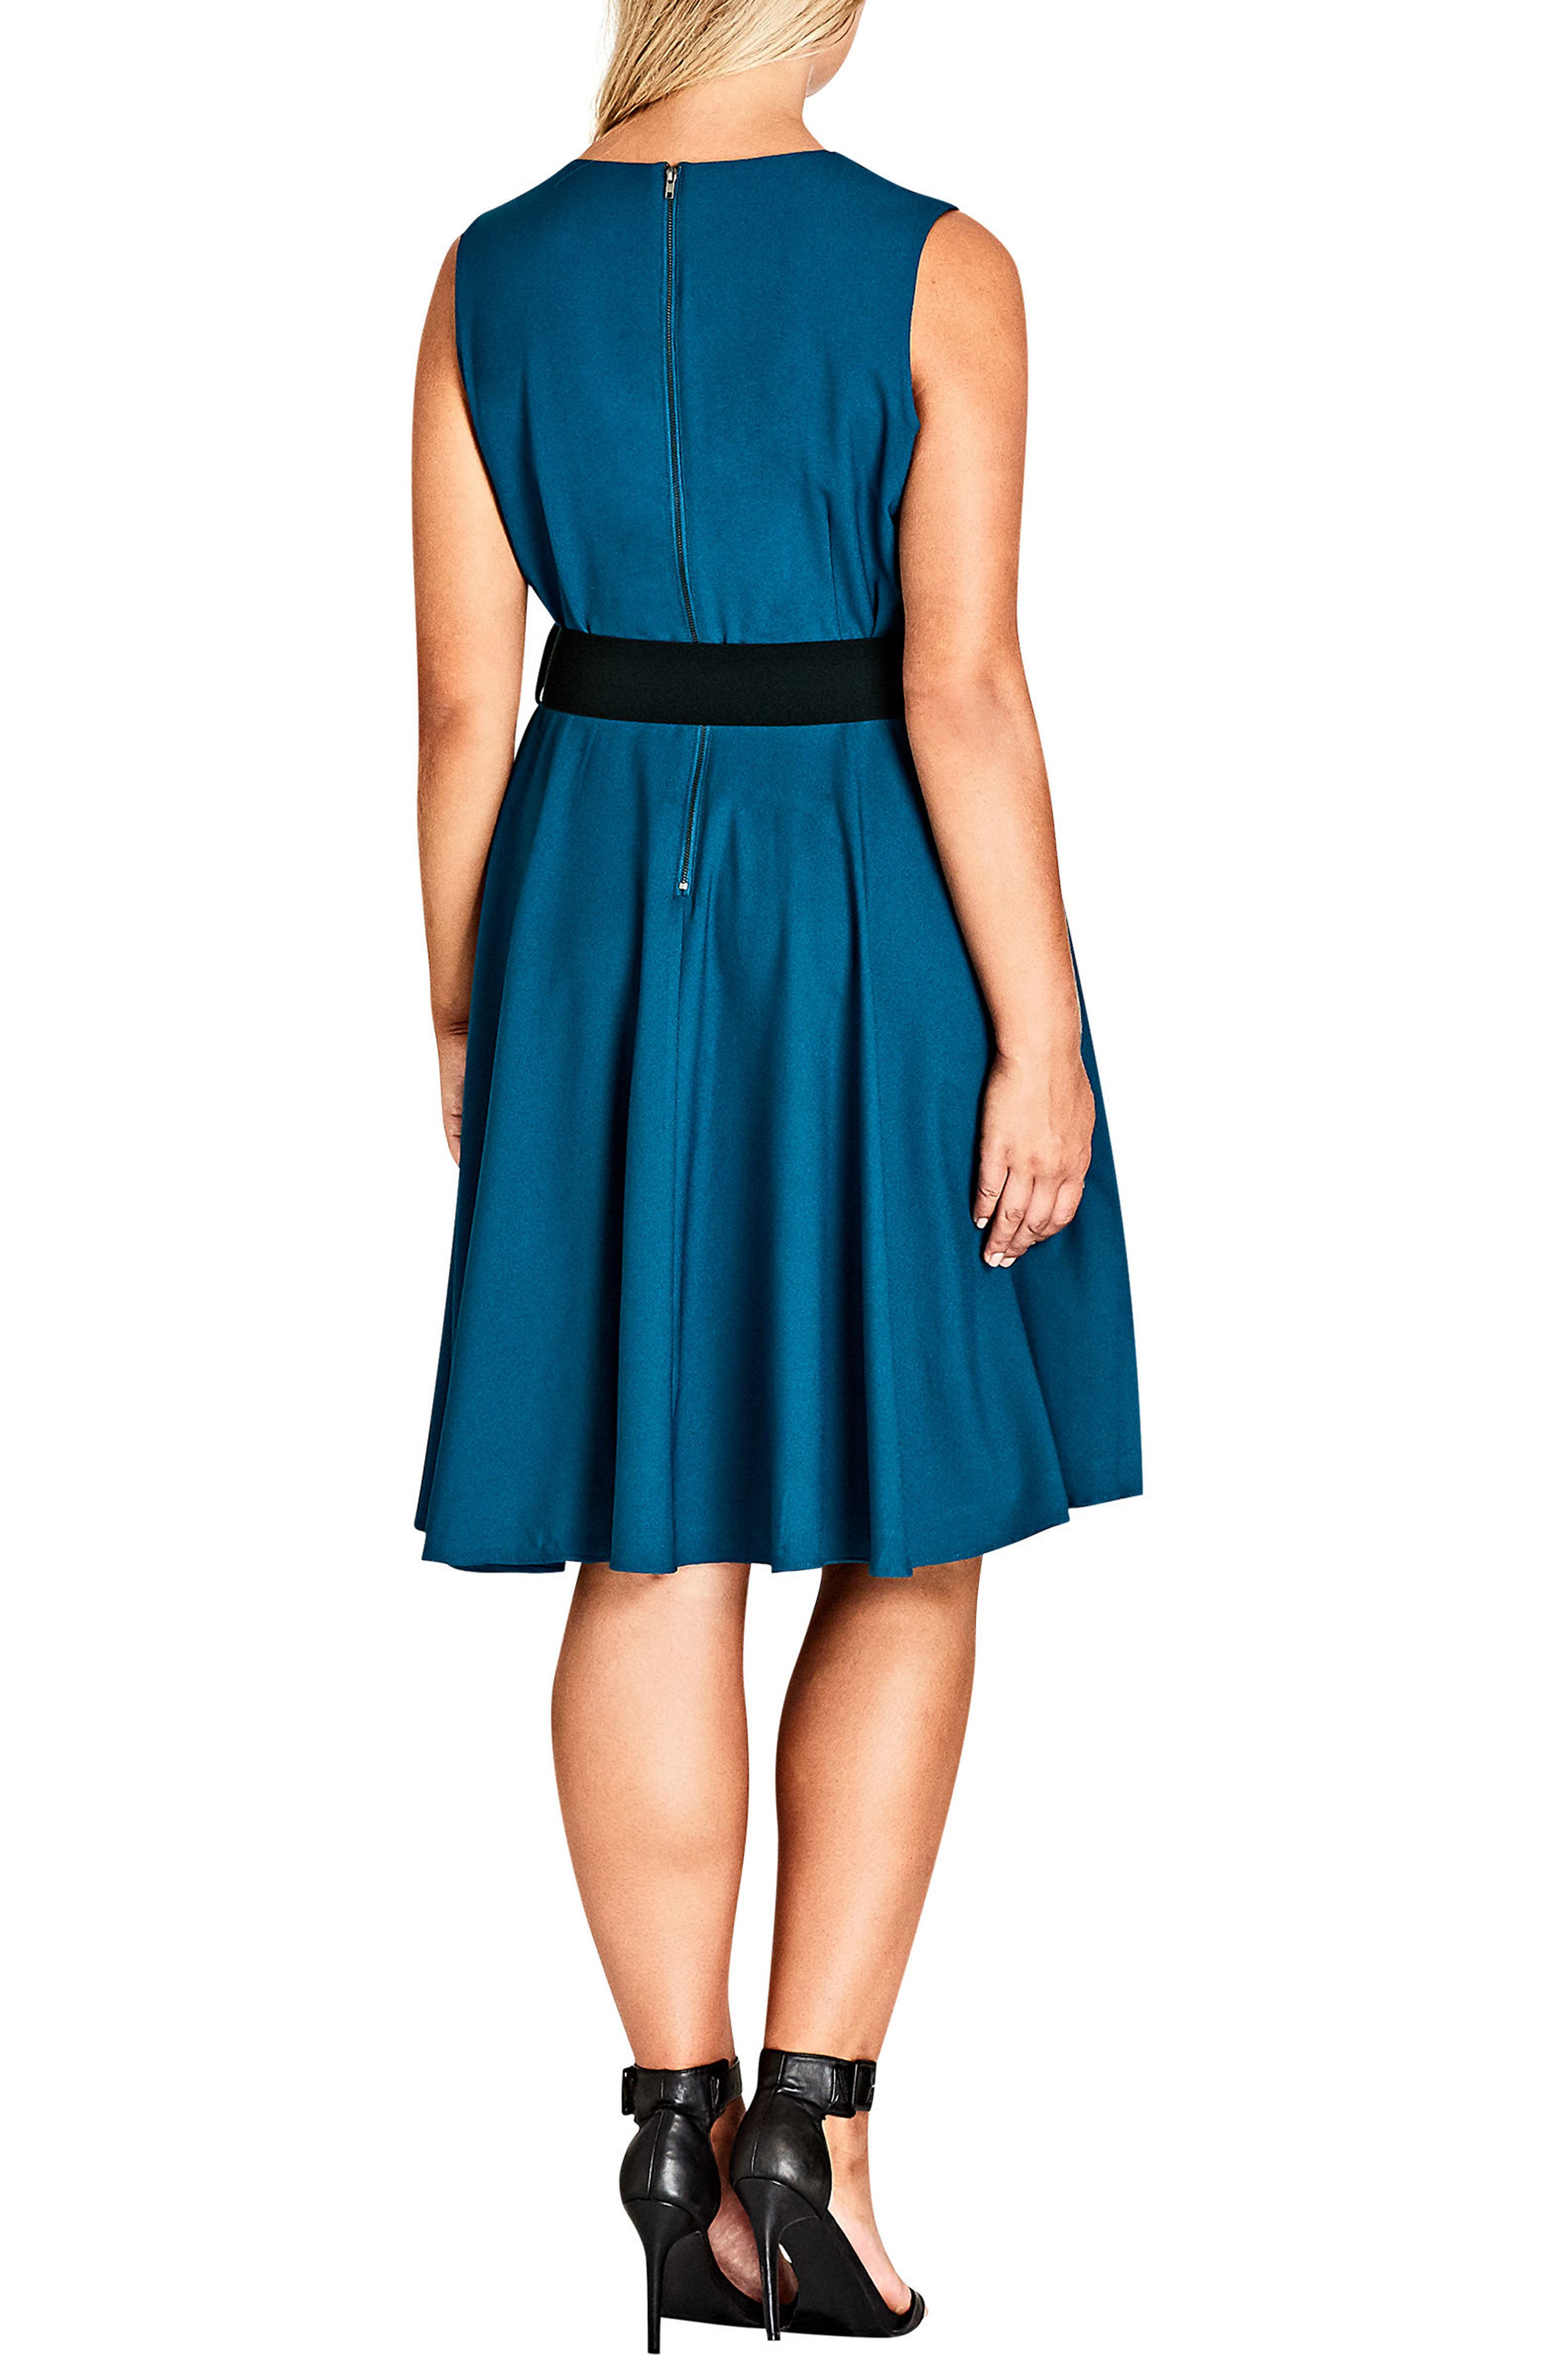 Alternate Image 2  - City Chic Vintage Veronica Belted Pleat Fit & Flare Dress (Plus Size)